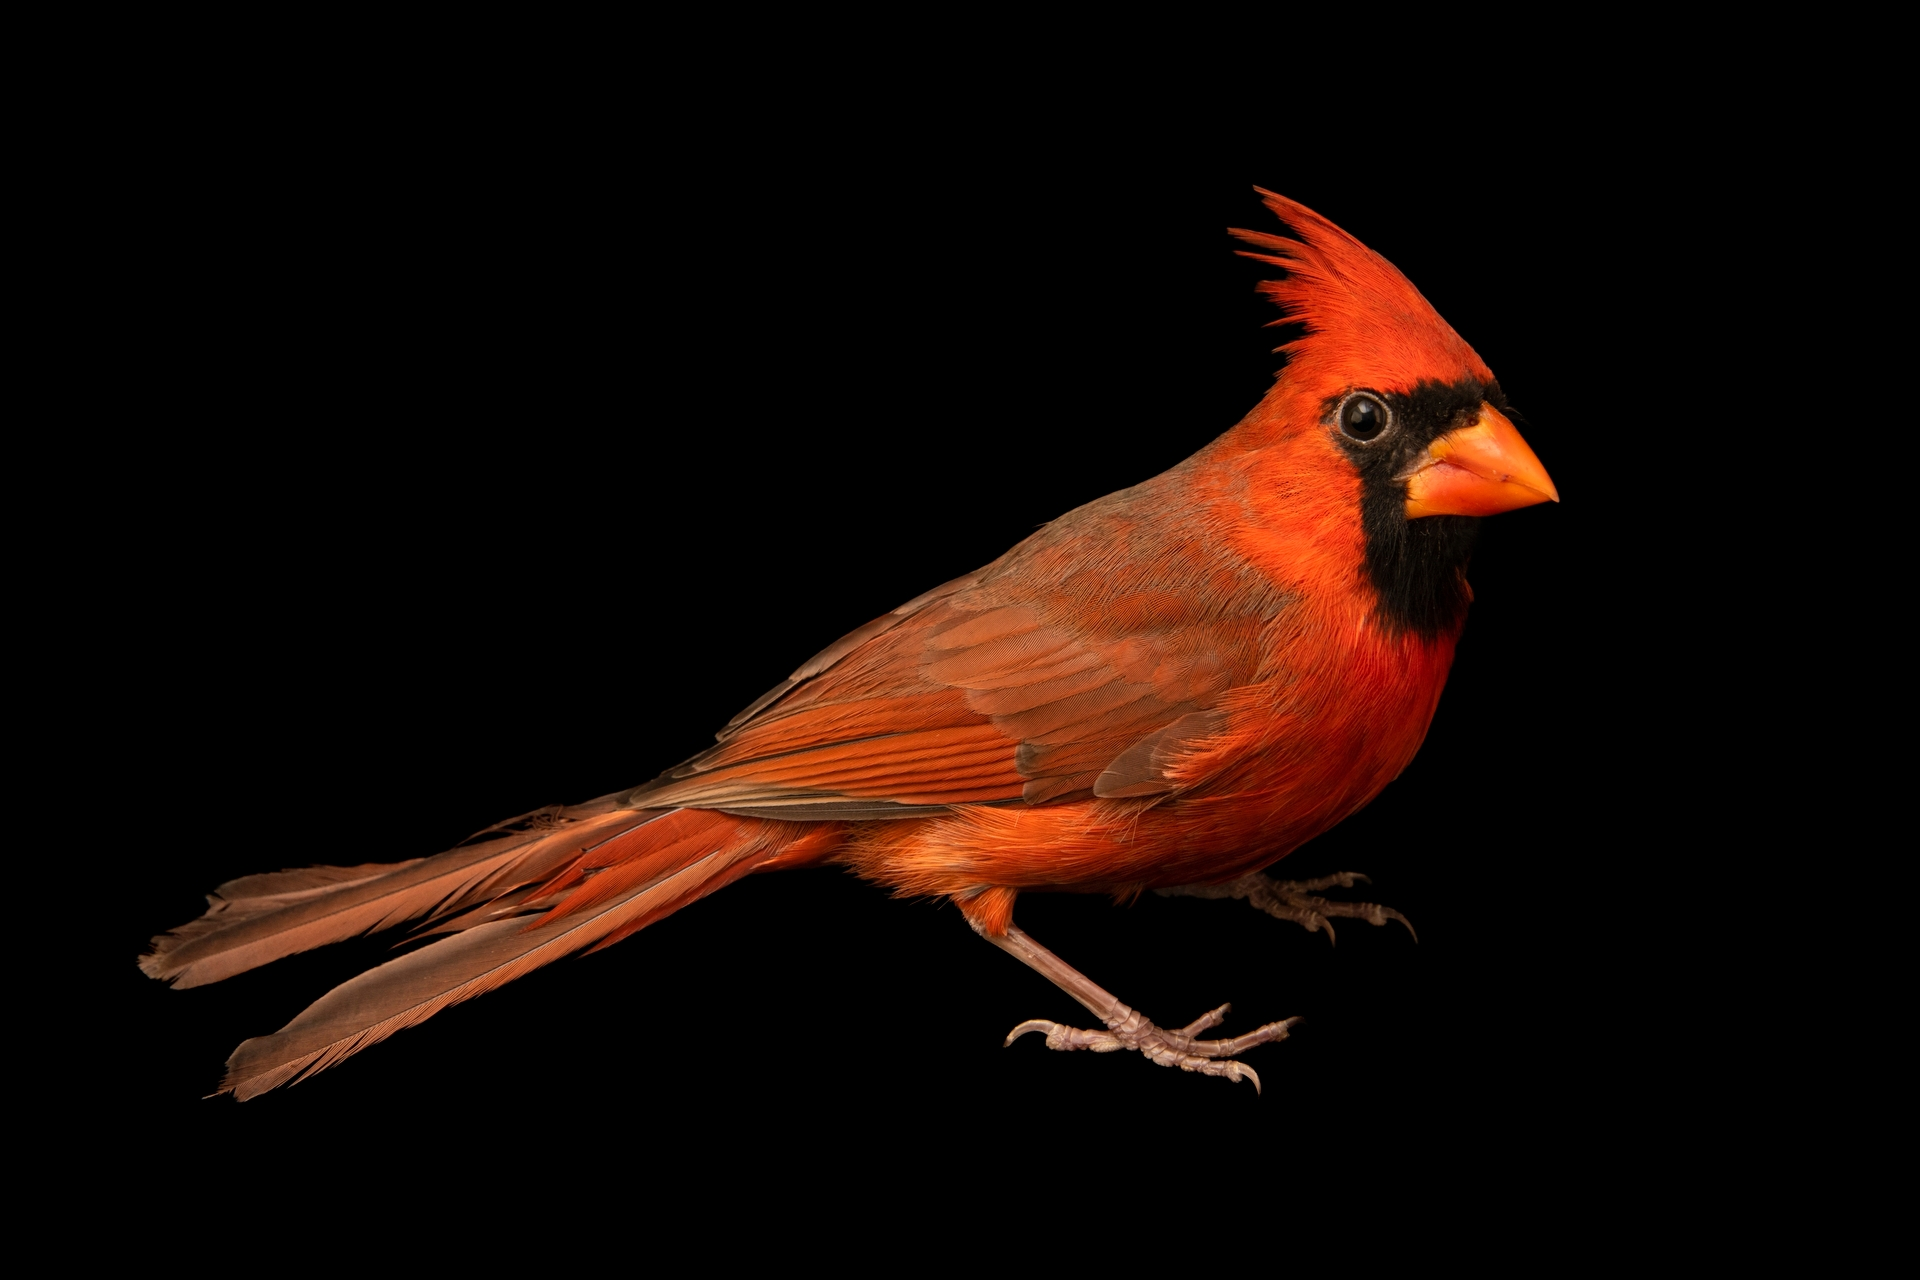 Photo: A male Northern cardinal (Cardinalis cardinalis cardinalis) at the Carolina Waterfowl Rescue.